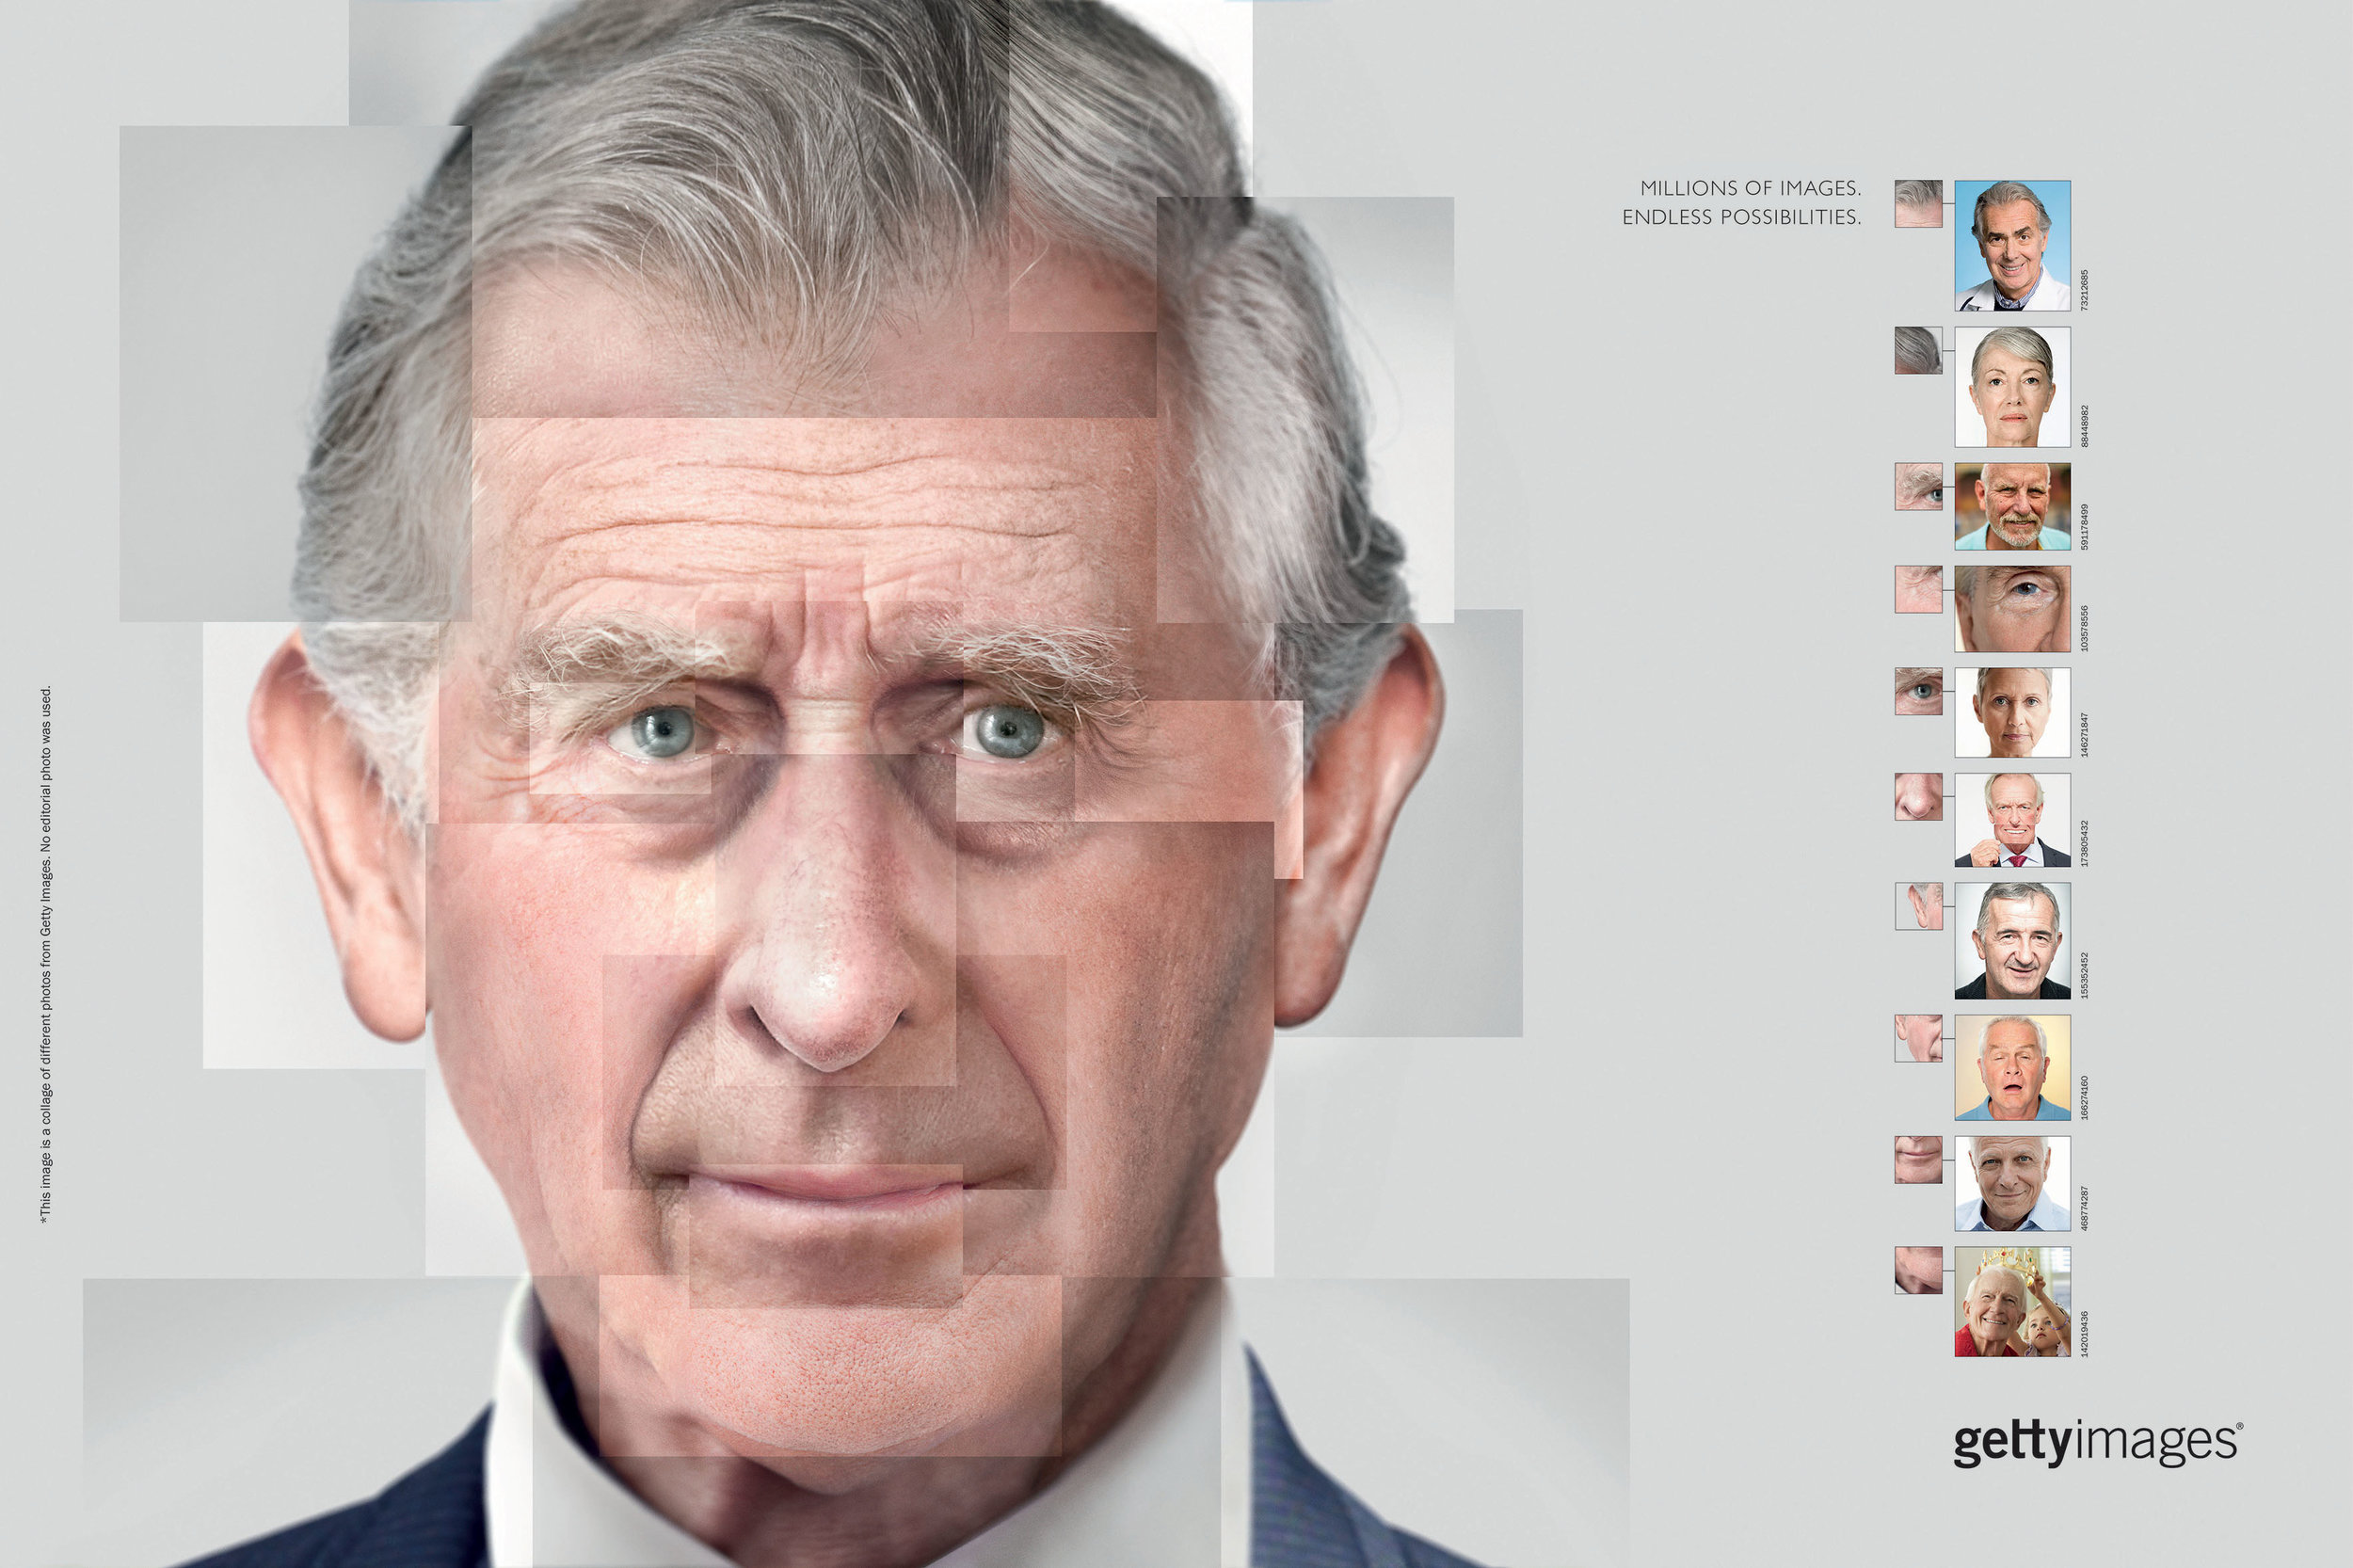 getty_images_endless_possibilities_prince_charles.jpg